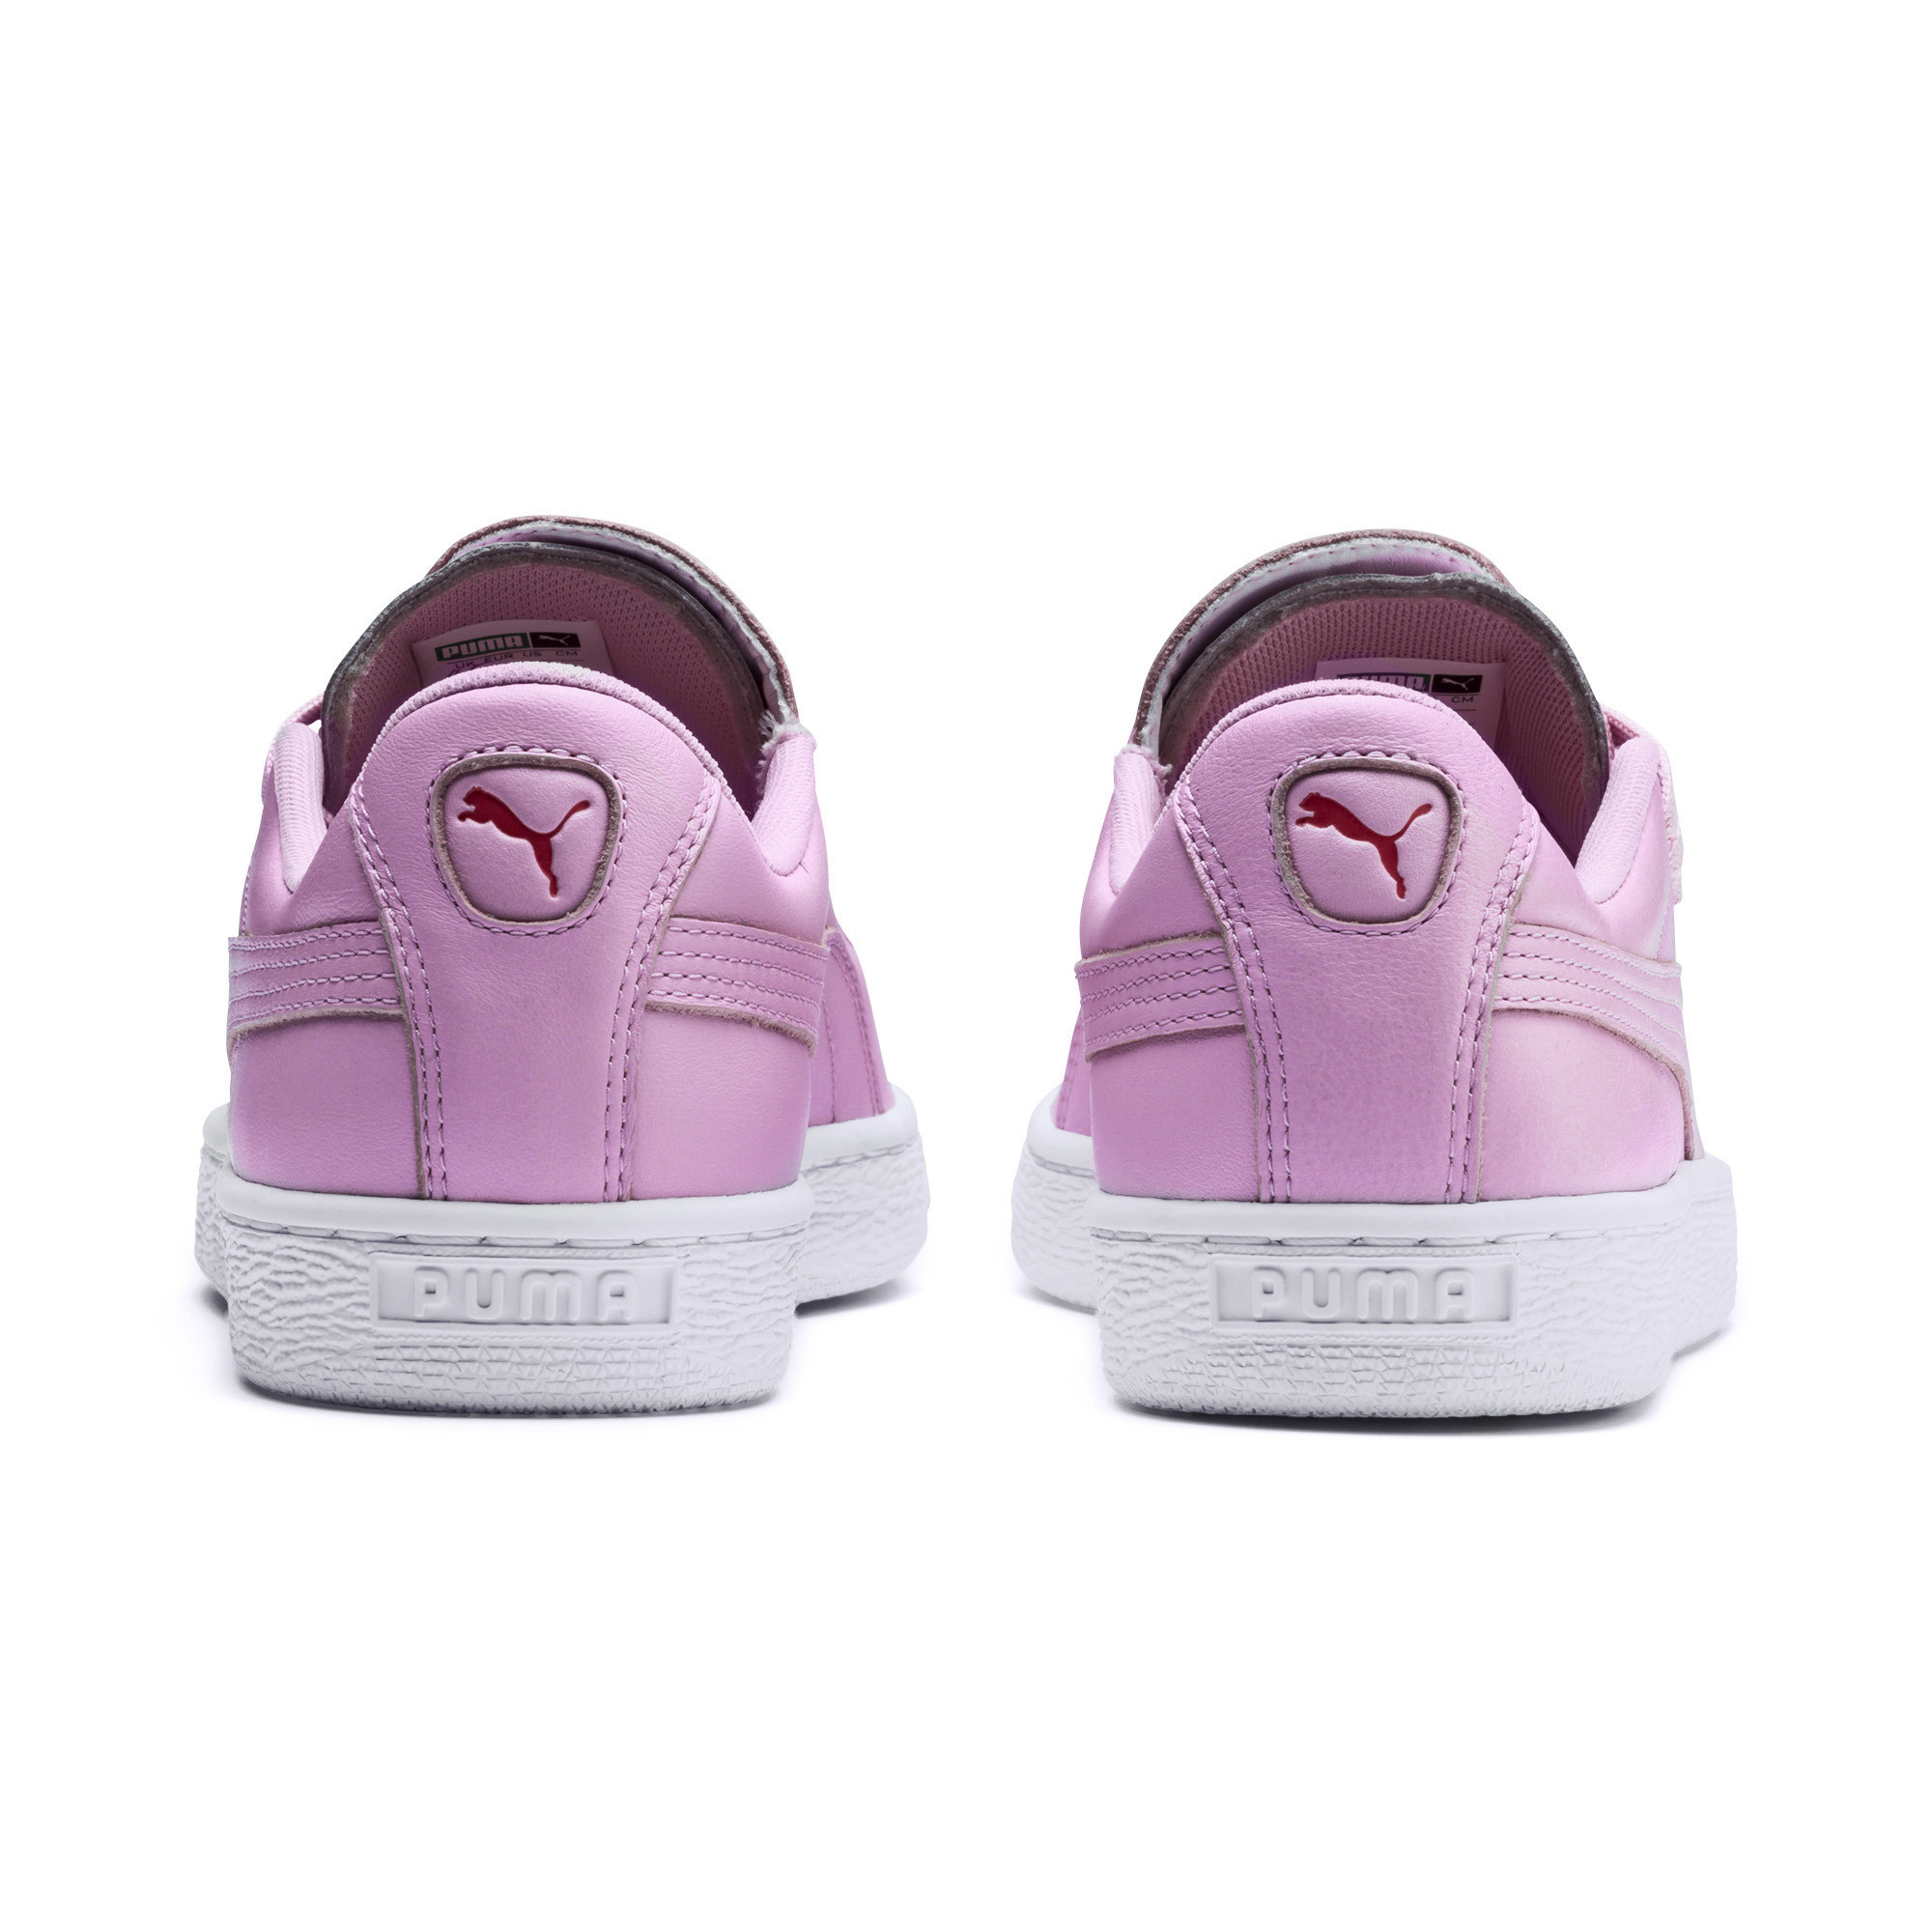 PUMA-Women-039-s-Basket-Crush-Emboss-Heart-Sneakers thumbnail 9